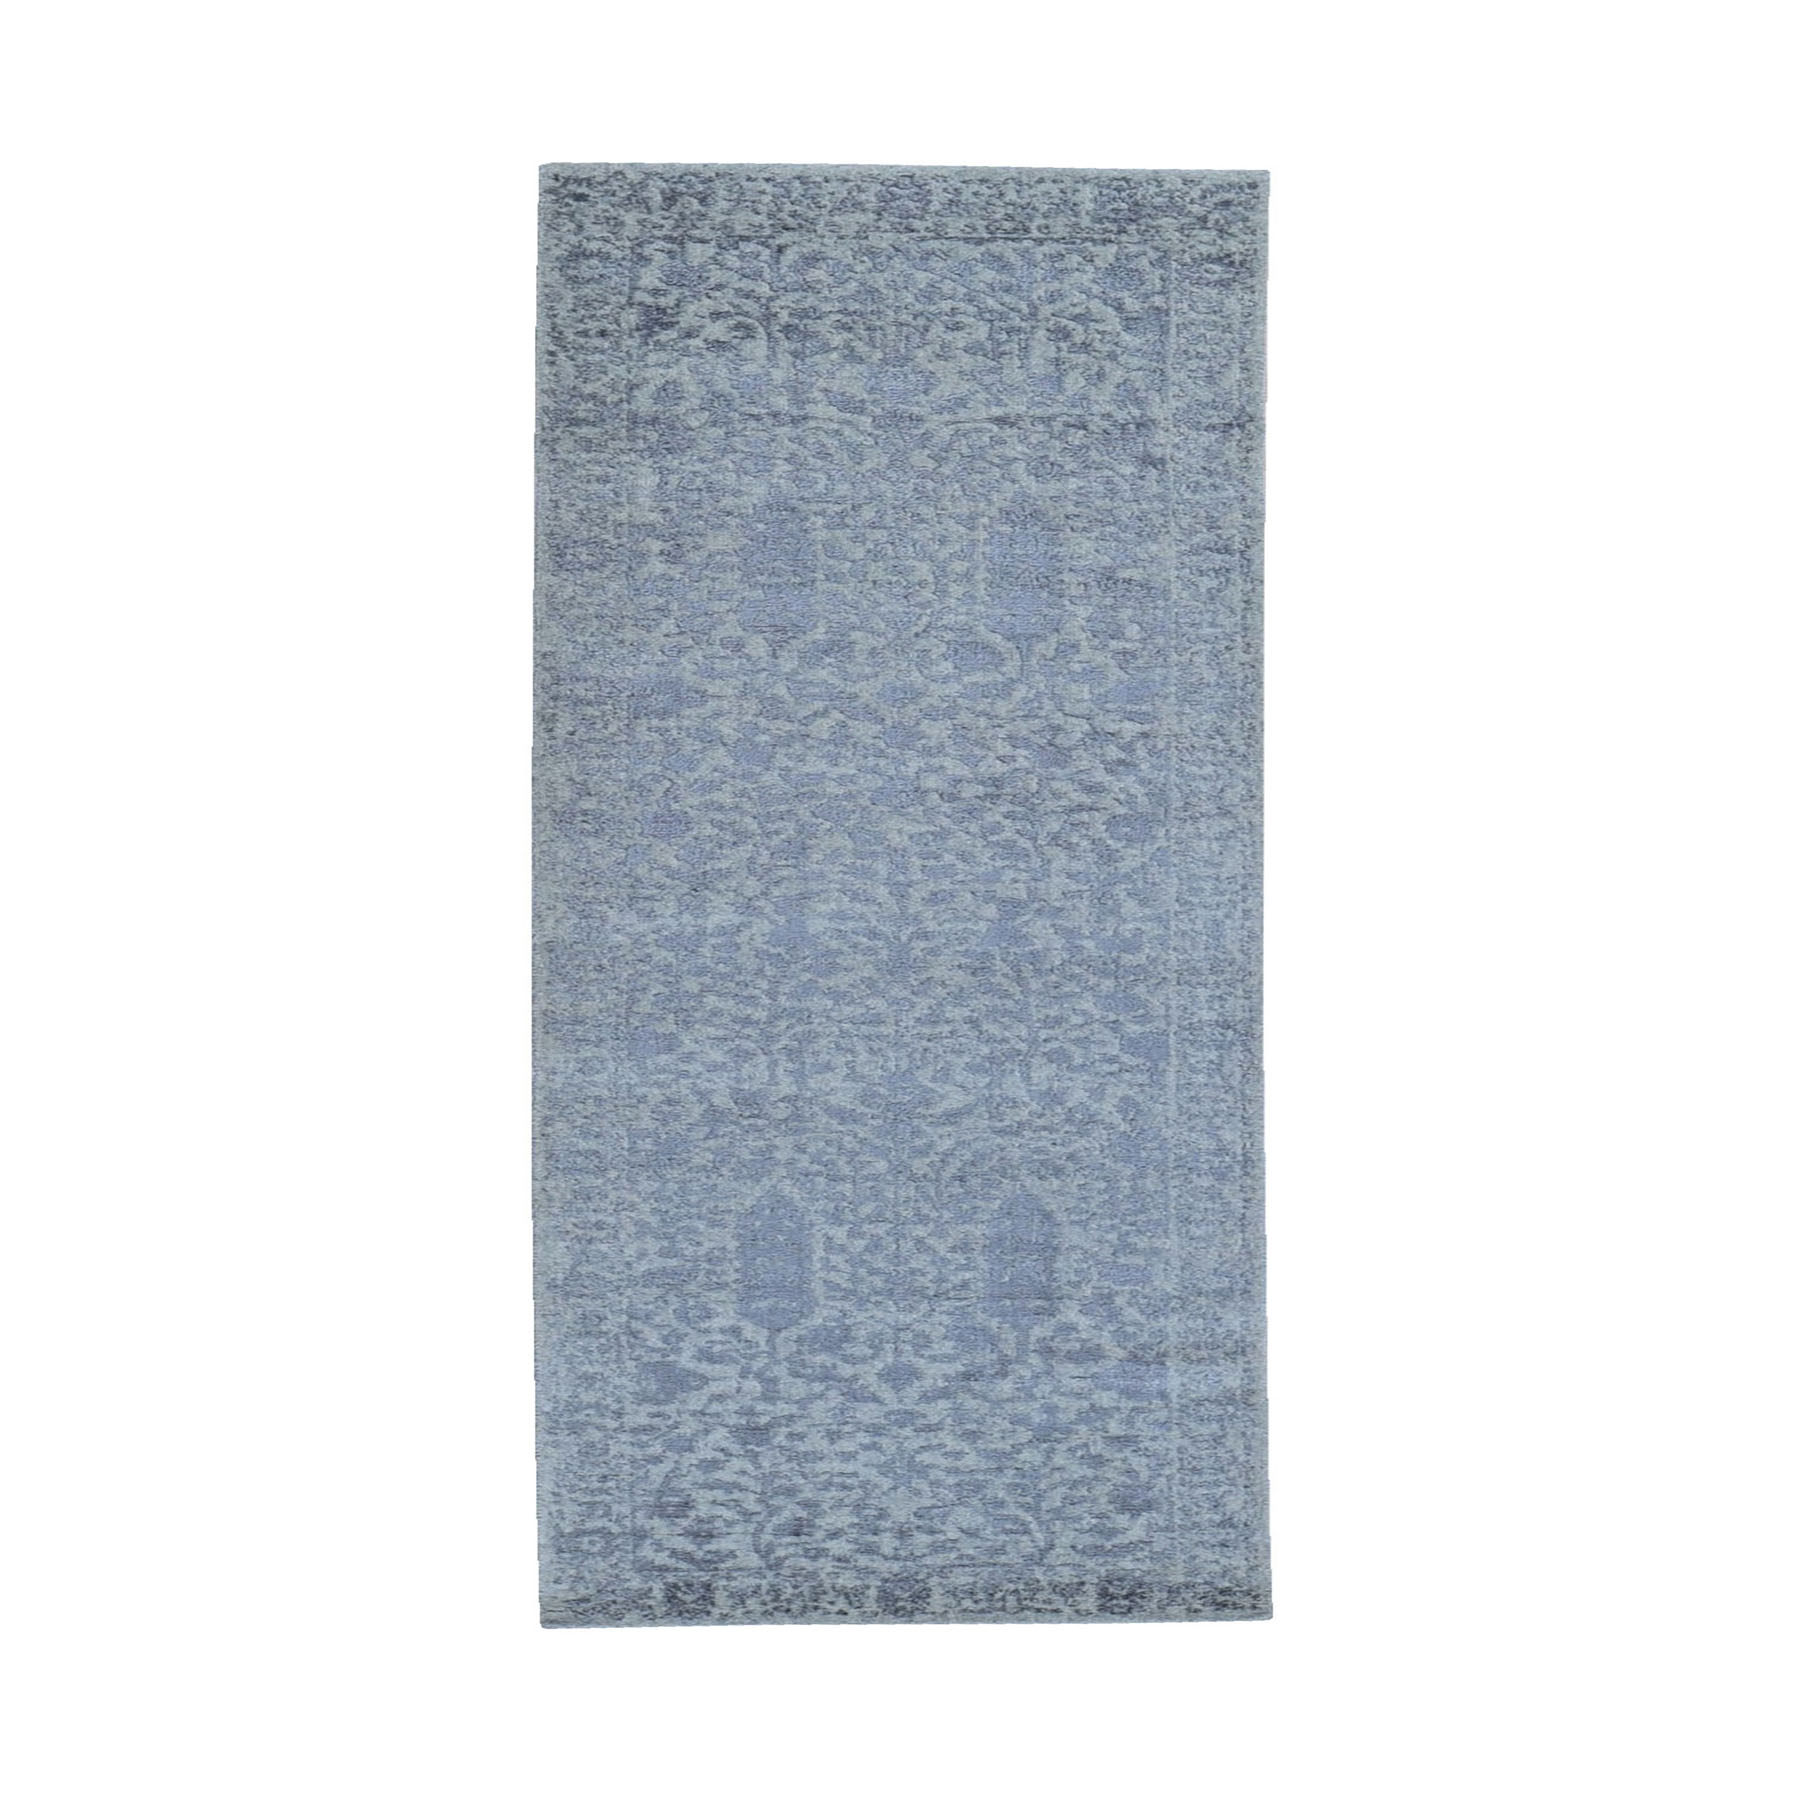 Mid Century Modern Collection Hand Loomed Grey Rug No: 1119240